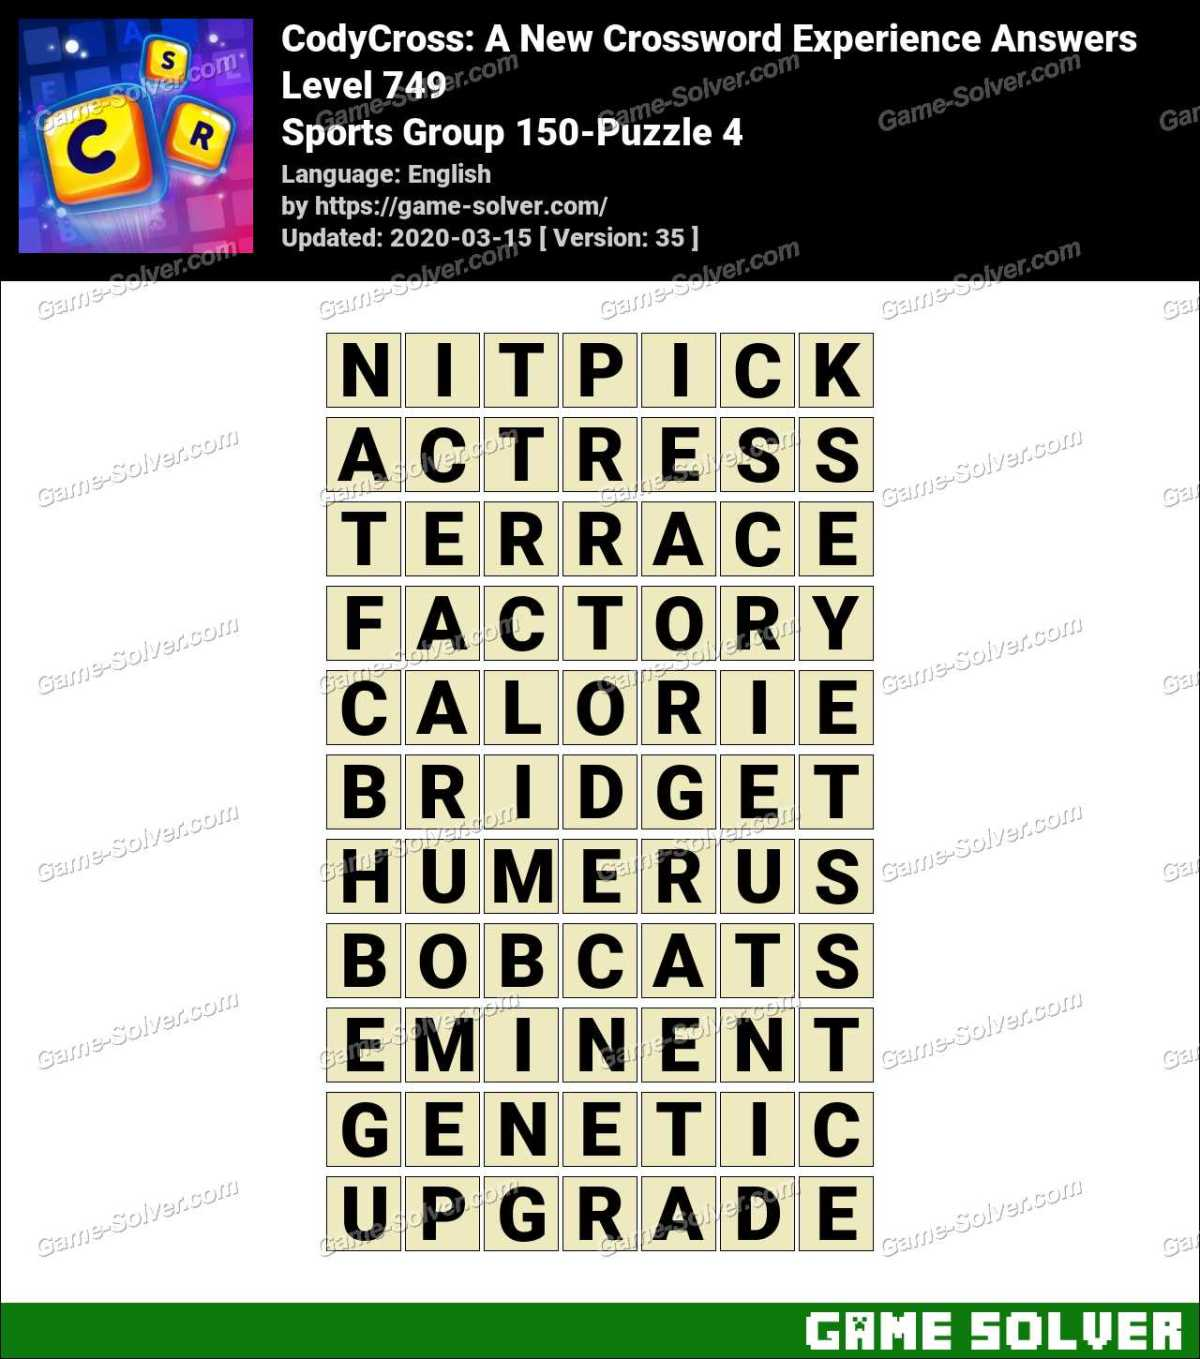 CodyCross Sports Group 150-Puzzle 4 Answers